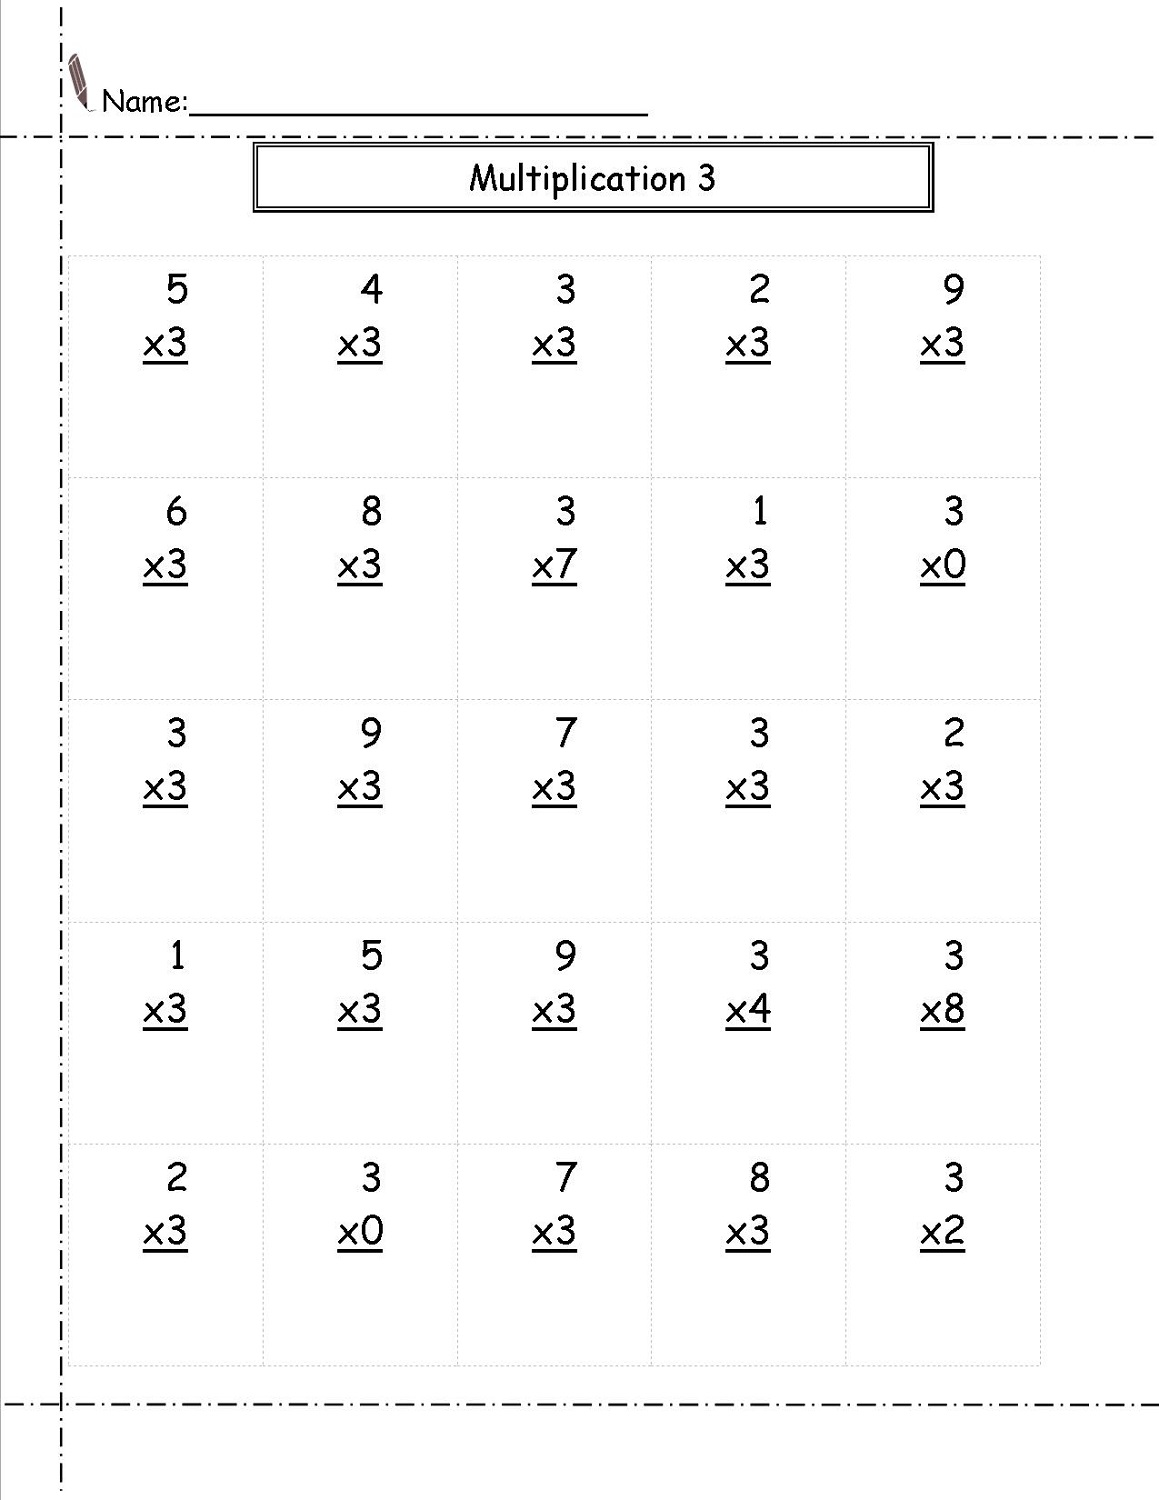 Multiply By 3 Worksheets Printable